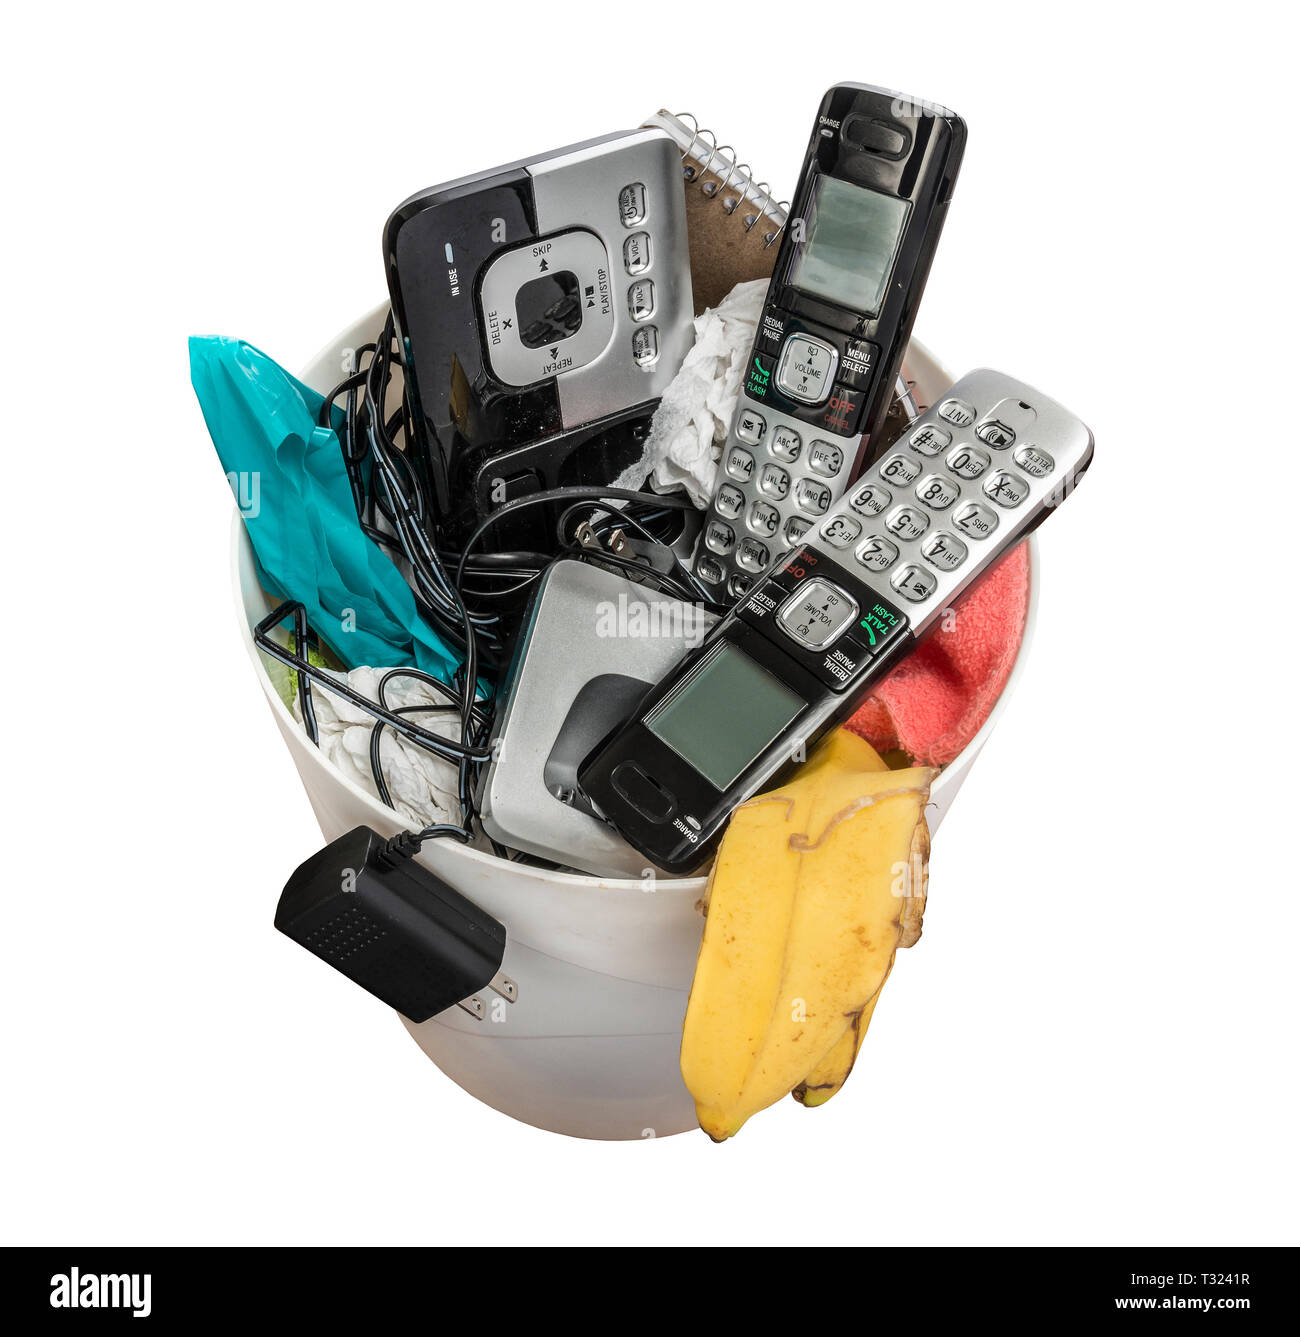 Horizontal shot of land line telephones thrown away in a trashcan.  This shot is looking down on the trashcan. - Stock Image